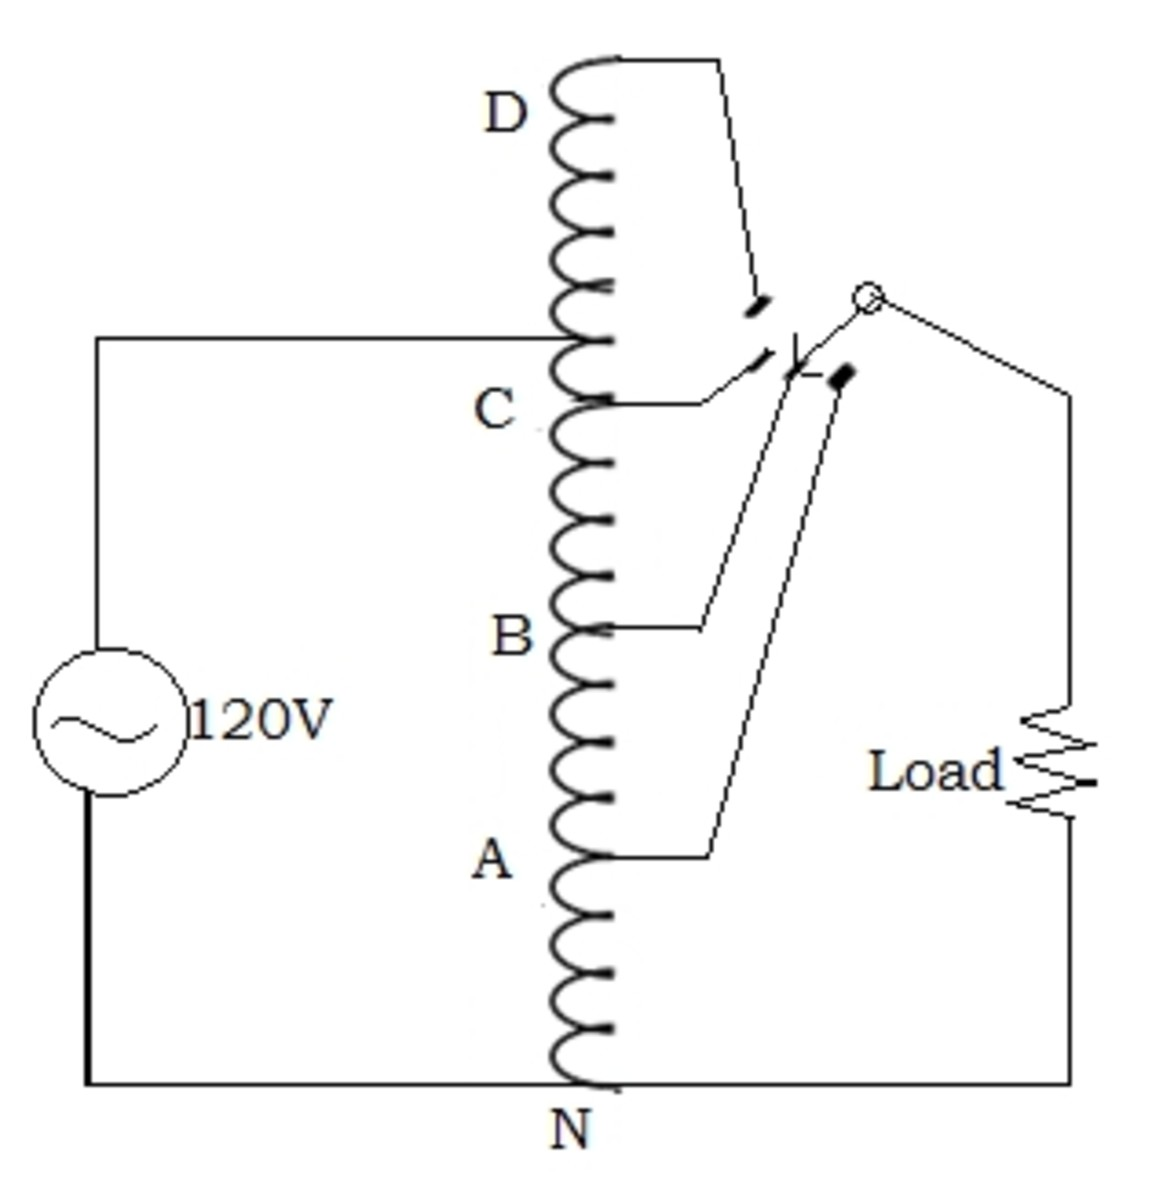 Some Significant Mechanical Engineering Questions for